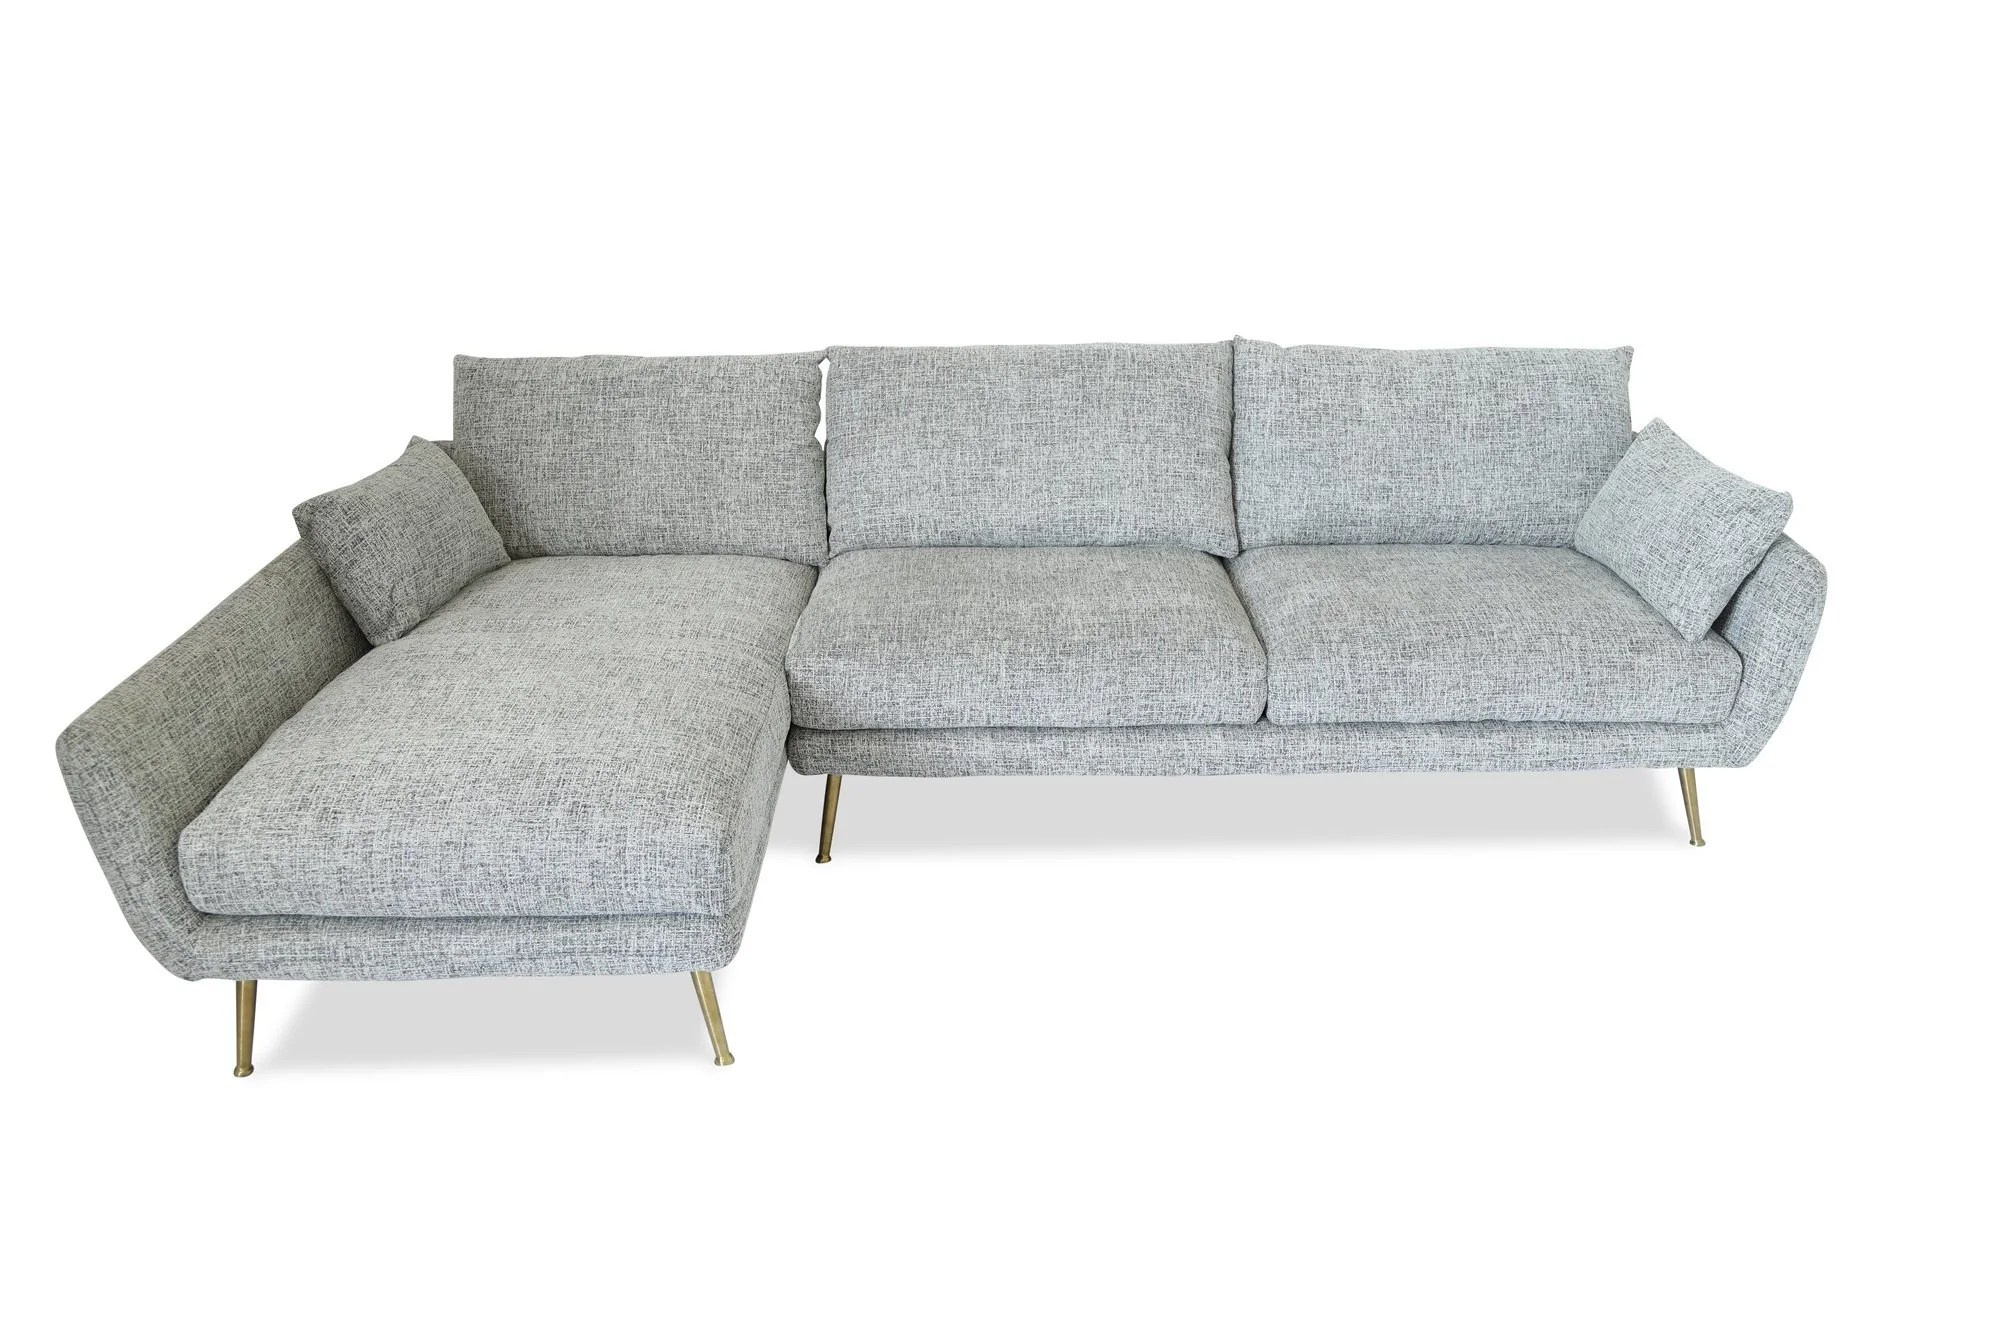 Harlow Mid Century Modern Sectional Sofa Fulton Grey Left Facing